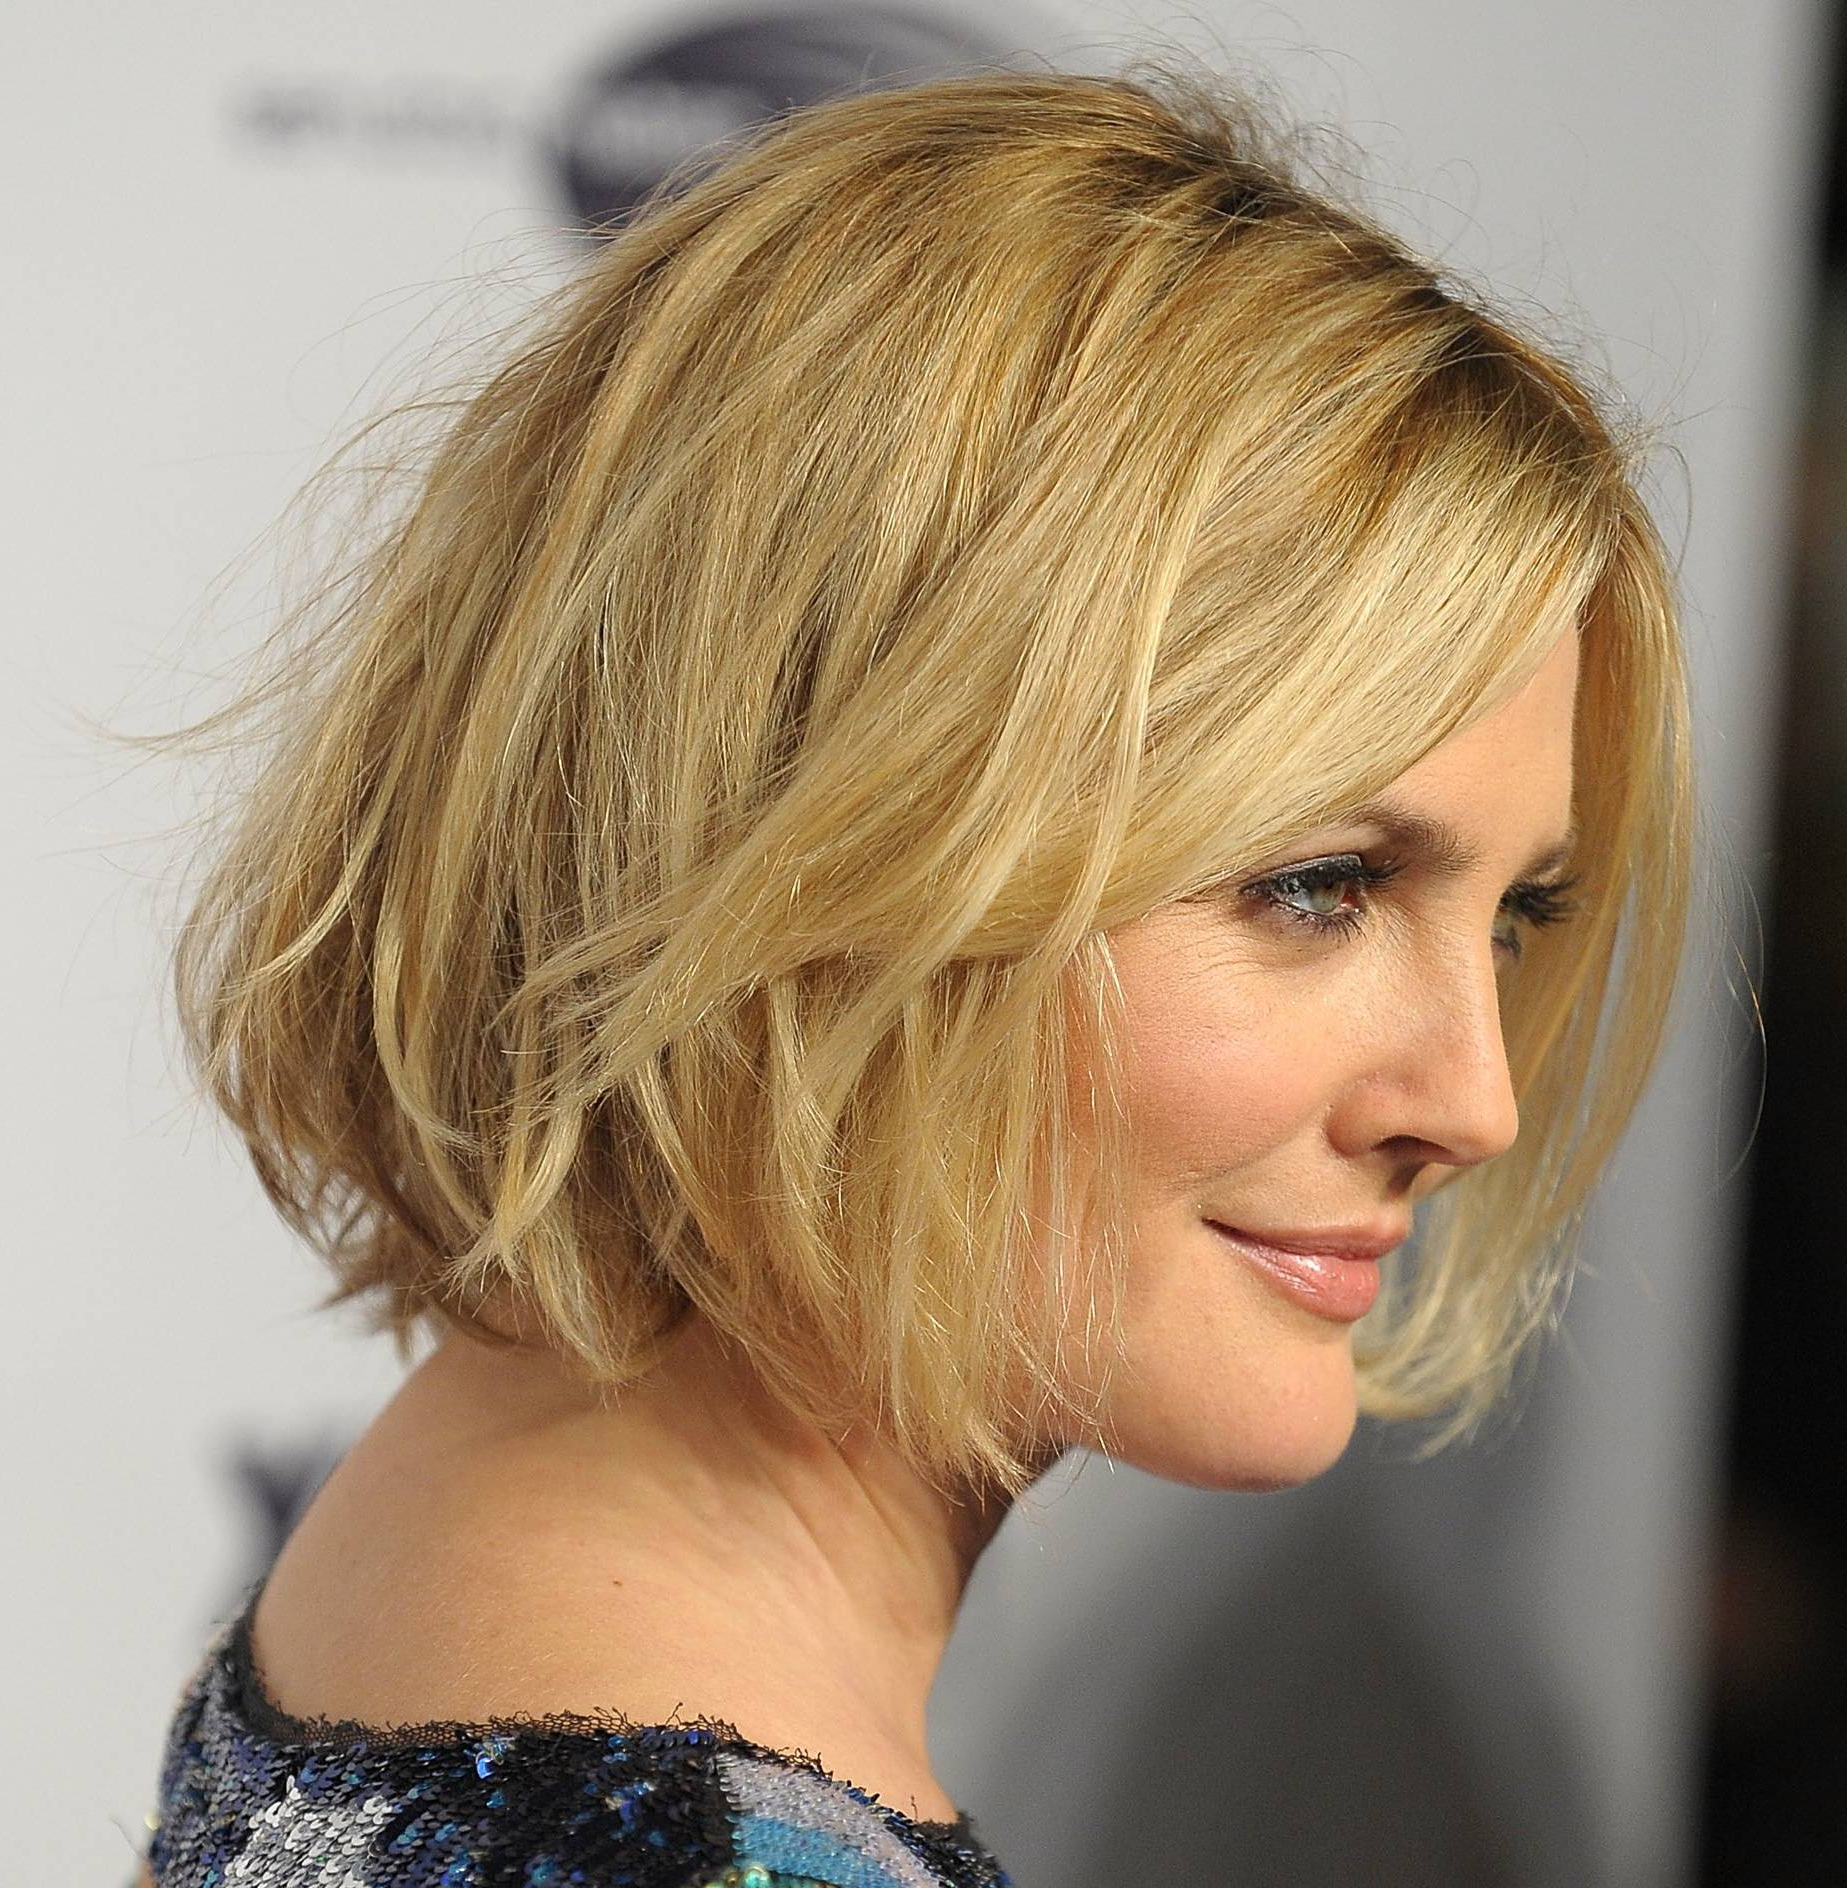 Short Choppy Hairstyles With Bangs – Hairstyle For Women & Man With Regard To Choppy Short Hairstyles For Older Women (View 13 of 25)